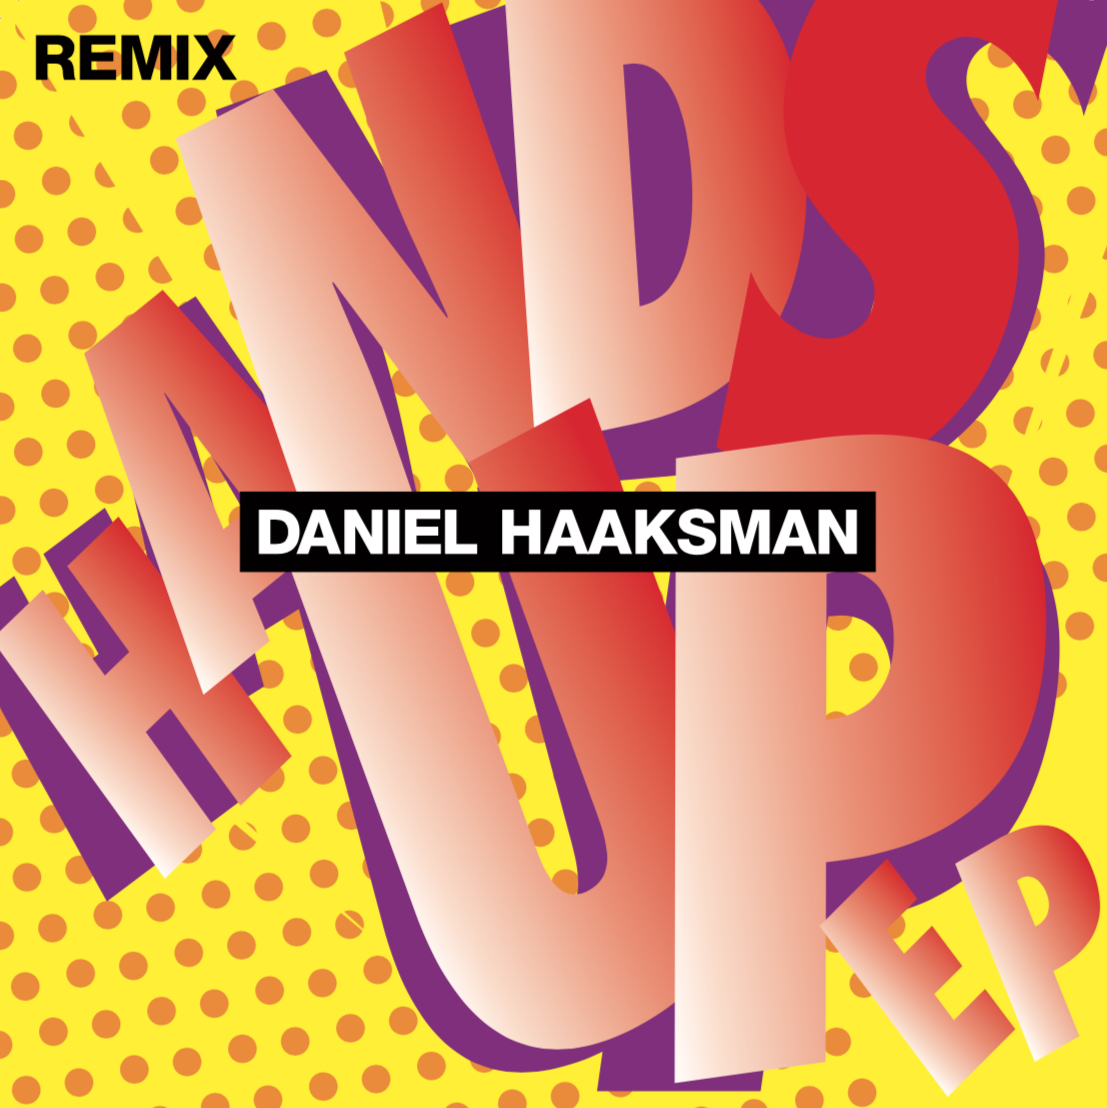 Man 053 DH Hands Up Remix HI RES.jpg